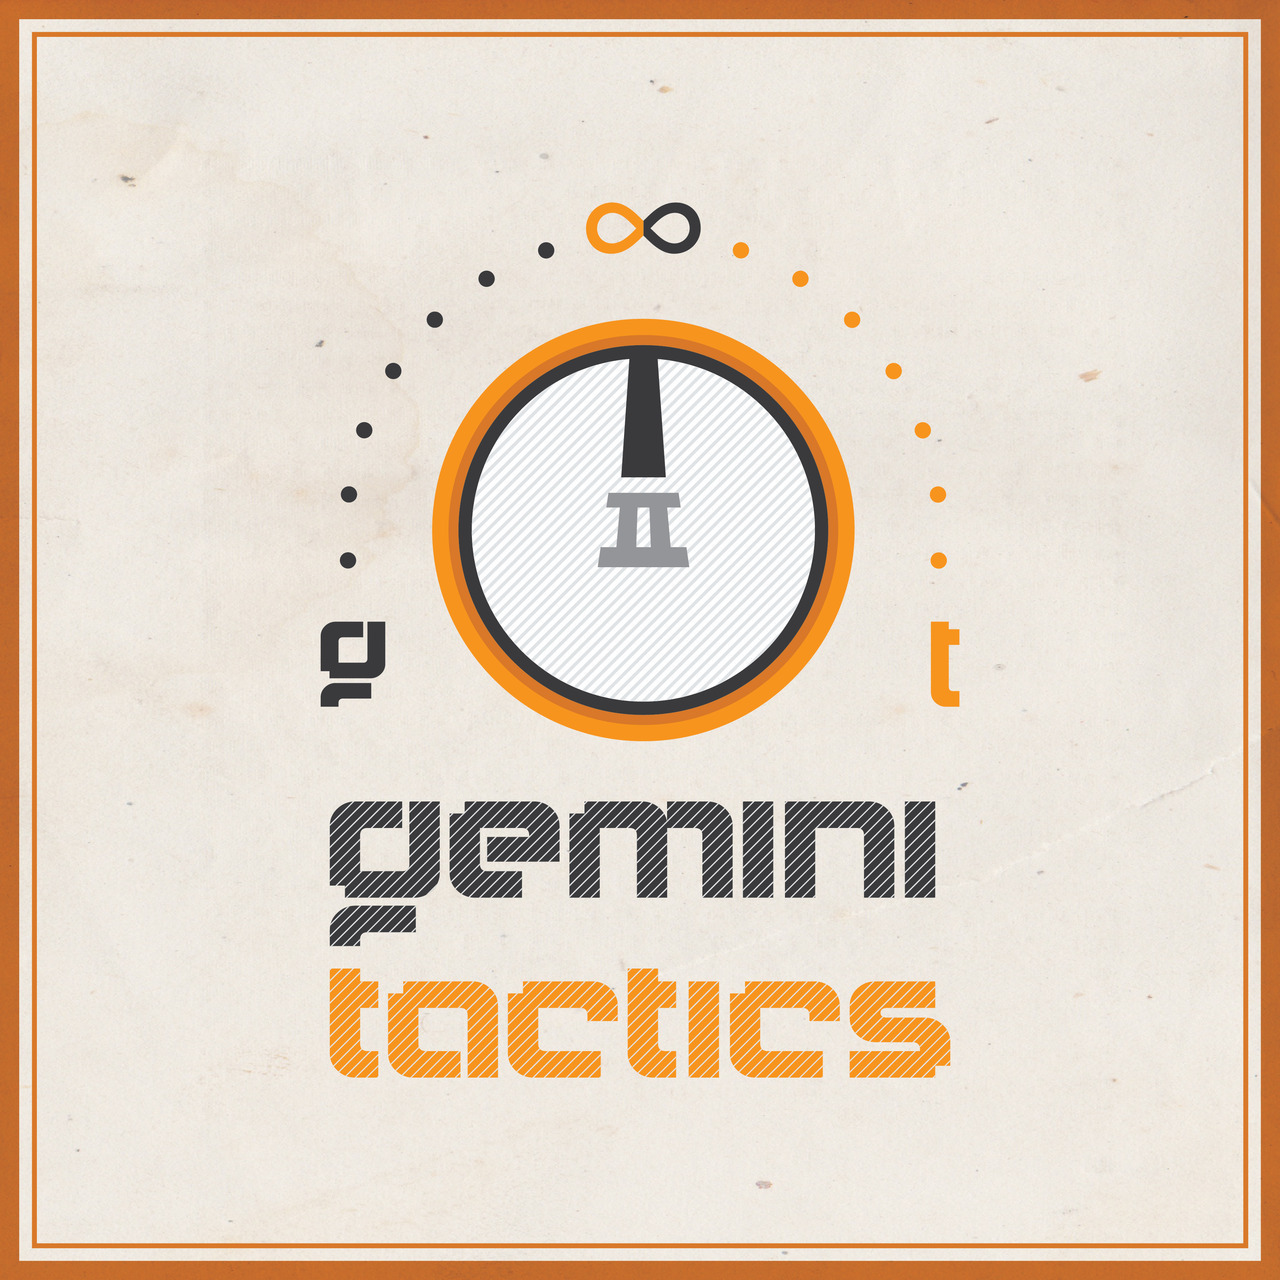 Gemini Tactics is a music production company established in 2006 by Ryan Blair and Justin Goyette. Dealing primarily in EDM (Electronic Dance Music) but slowly expanding to different genres, Gemini Tactics pushes the creative envelope and strives to bring an eclectic mix of culture and taste to all forms of music.   With over 15 years of experience in the field of musical production; Gemini Tactics has firmly established its roots in the art of mixing and mastering, and is available to assist the musical needs of individuals or companies. Gemini Tactics can be found at www.facebook.com/geminitacticsCPTT.